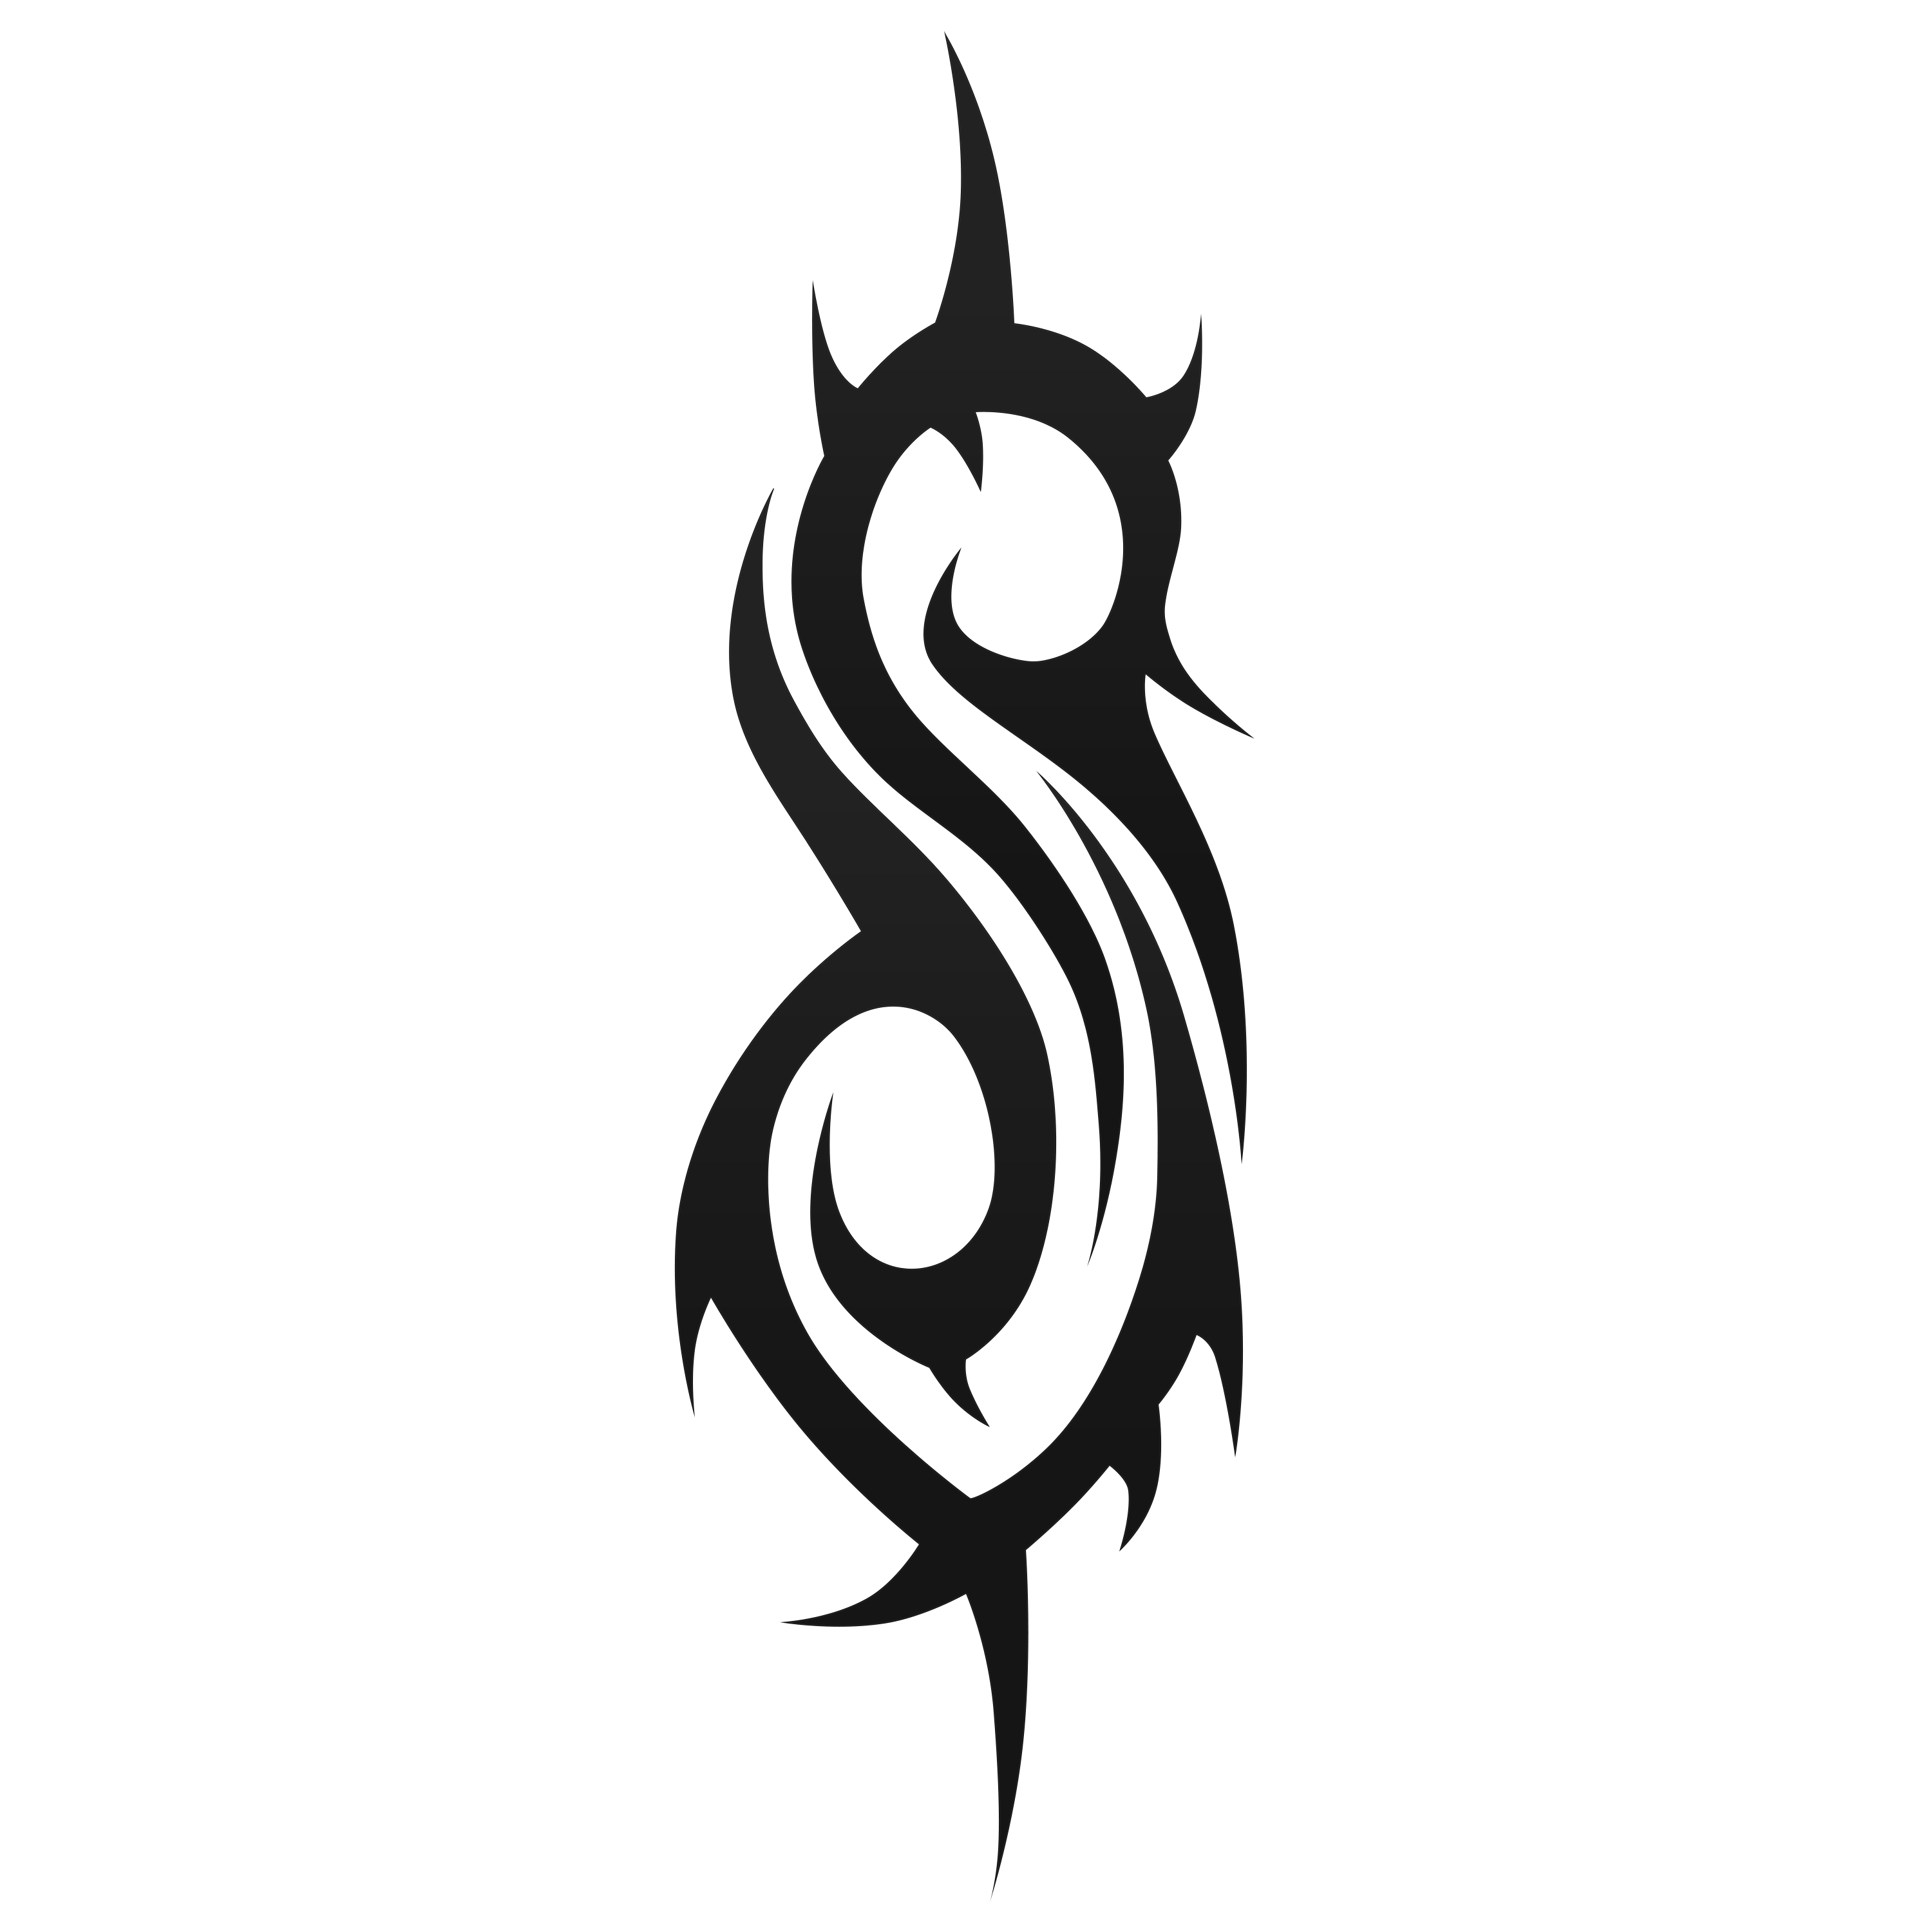 Water and sun clipart tattoos clip black and white library Slipknot Logos | Slipknot Blog | tattoos | Pinterest | Slipknot ... clip black and white library